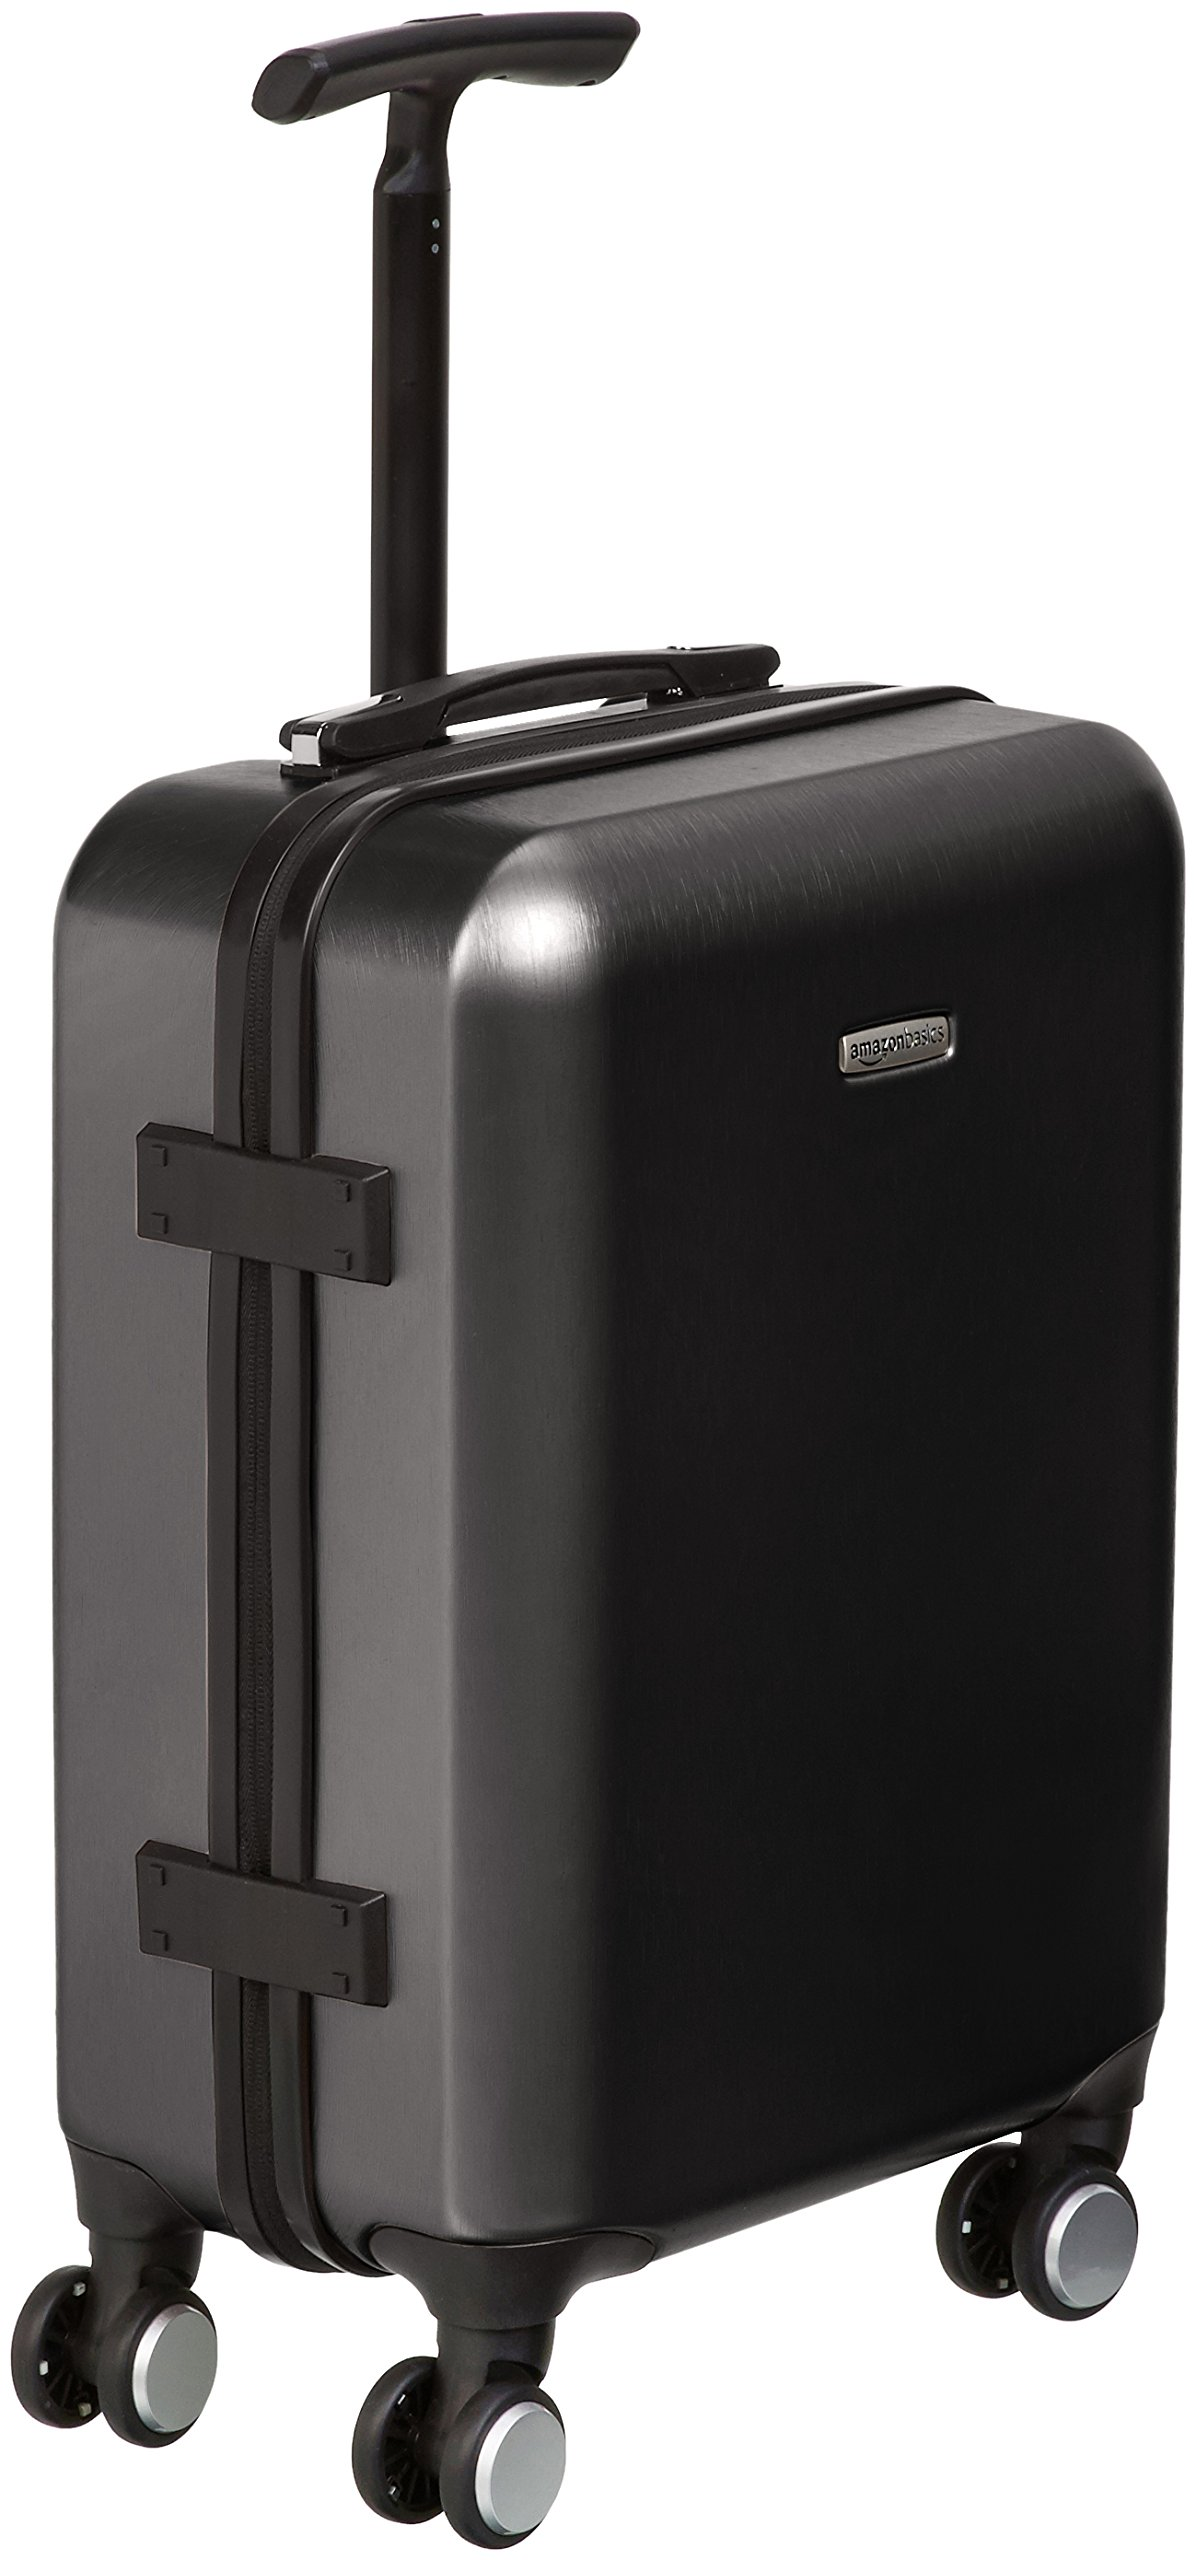 AmazonBasics Hardshell Carry-On Spinner Luggage Suitcase with TSA Lock - 20 Inch, Black